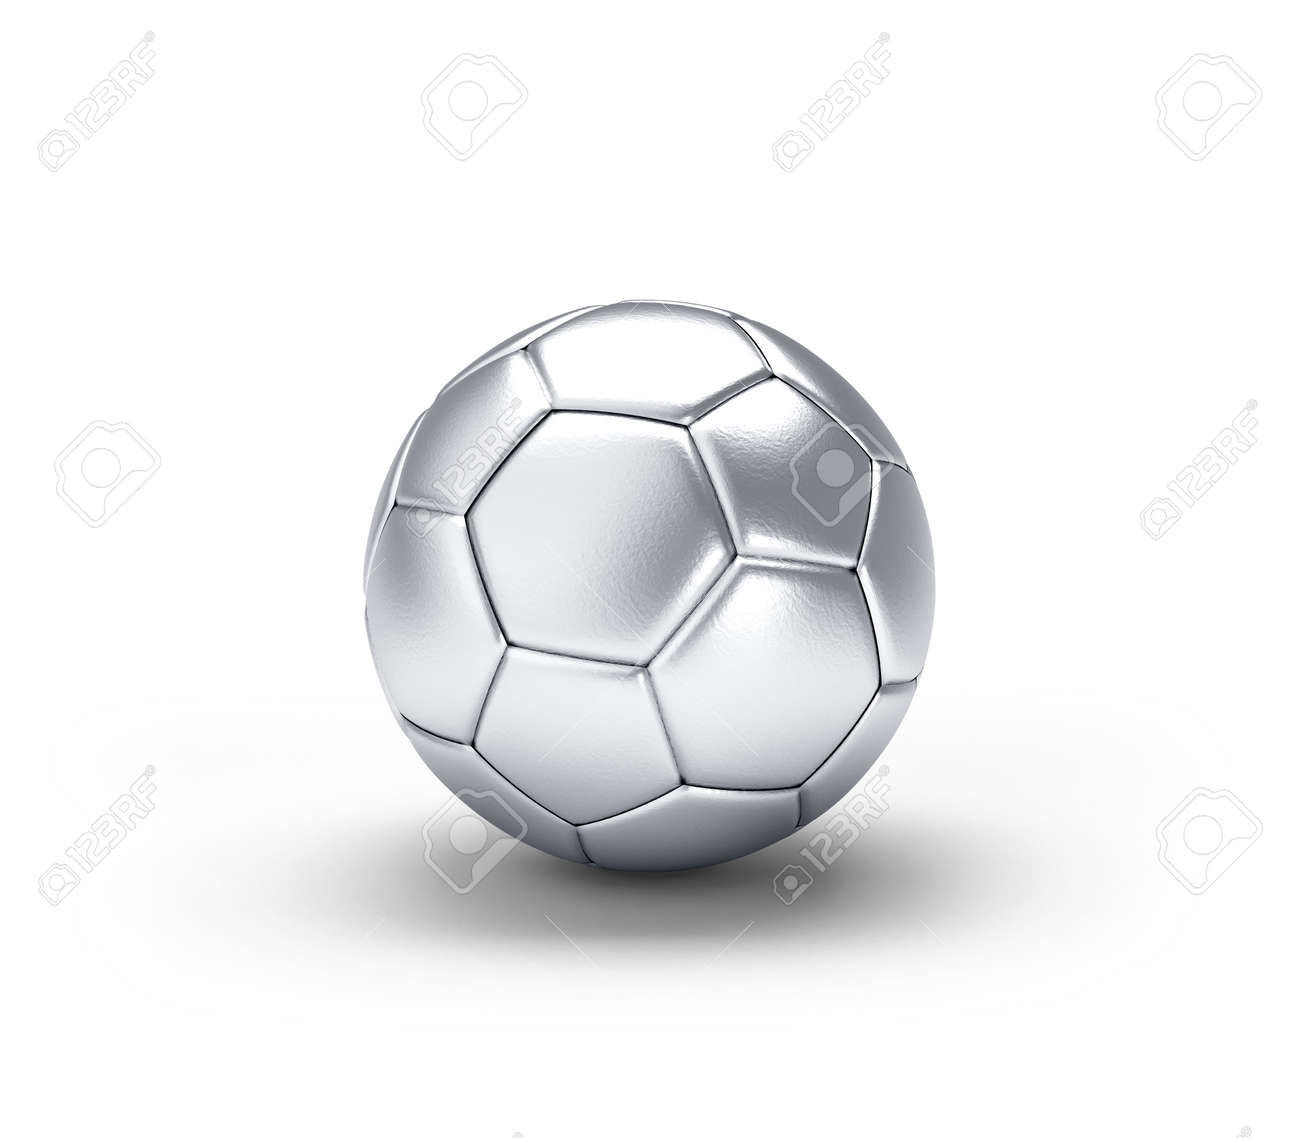 Silver soccer ball isolated on white background. 3d illustration. - 169824966